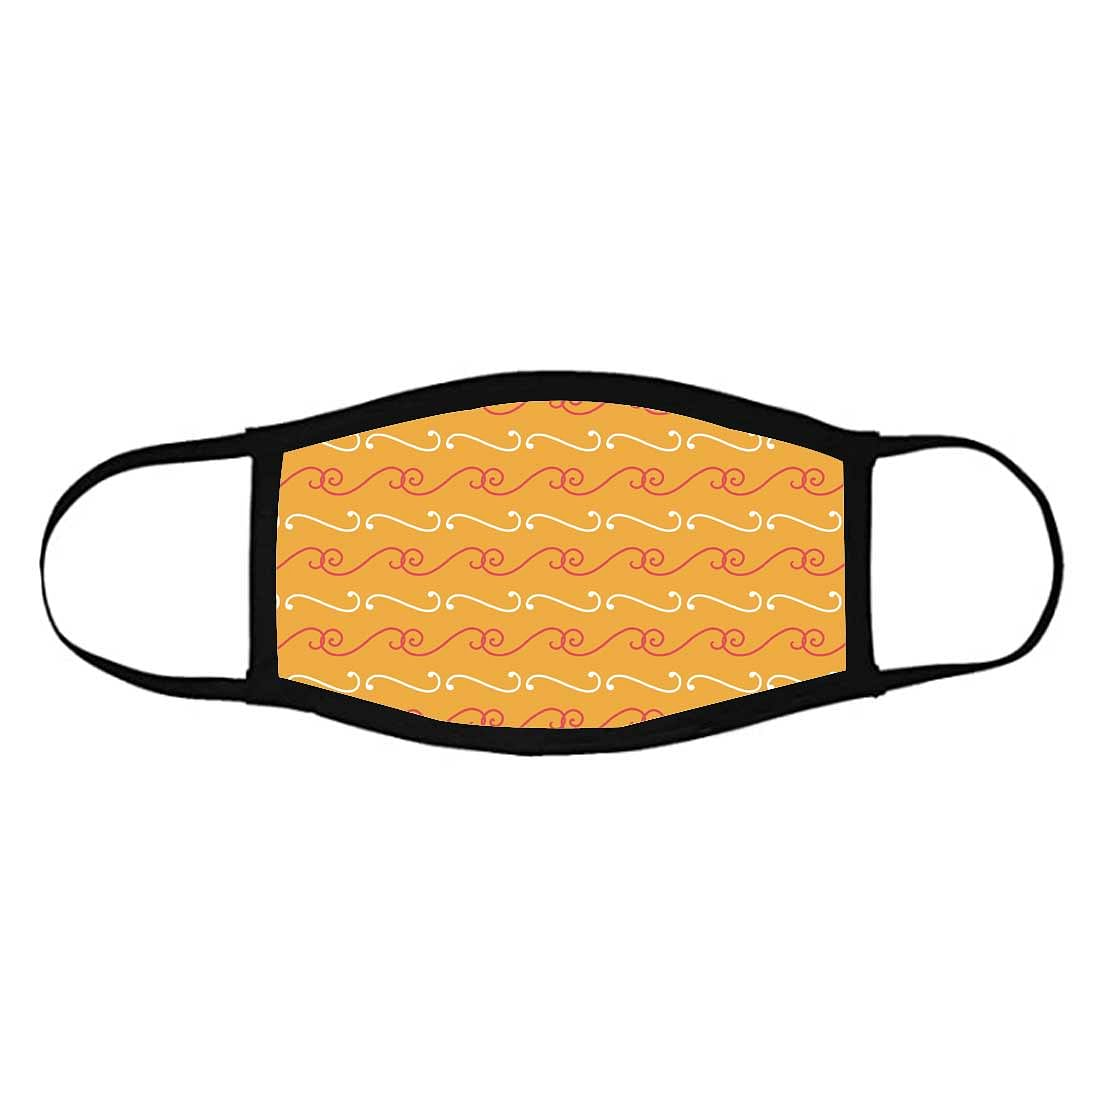 Face Mask -Set Of 2 Protective Masks -Orange Pattern